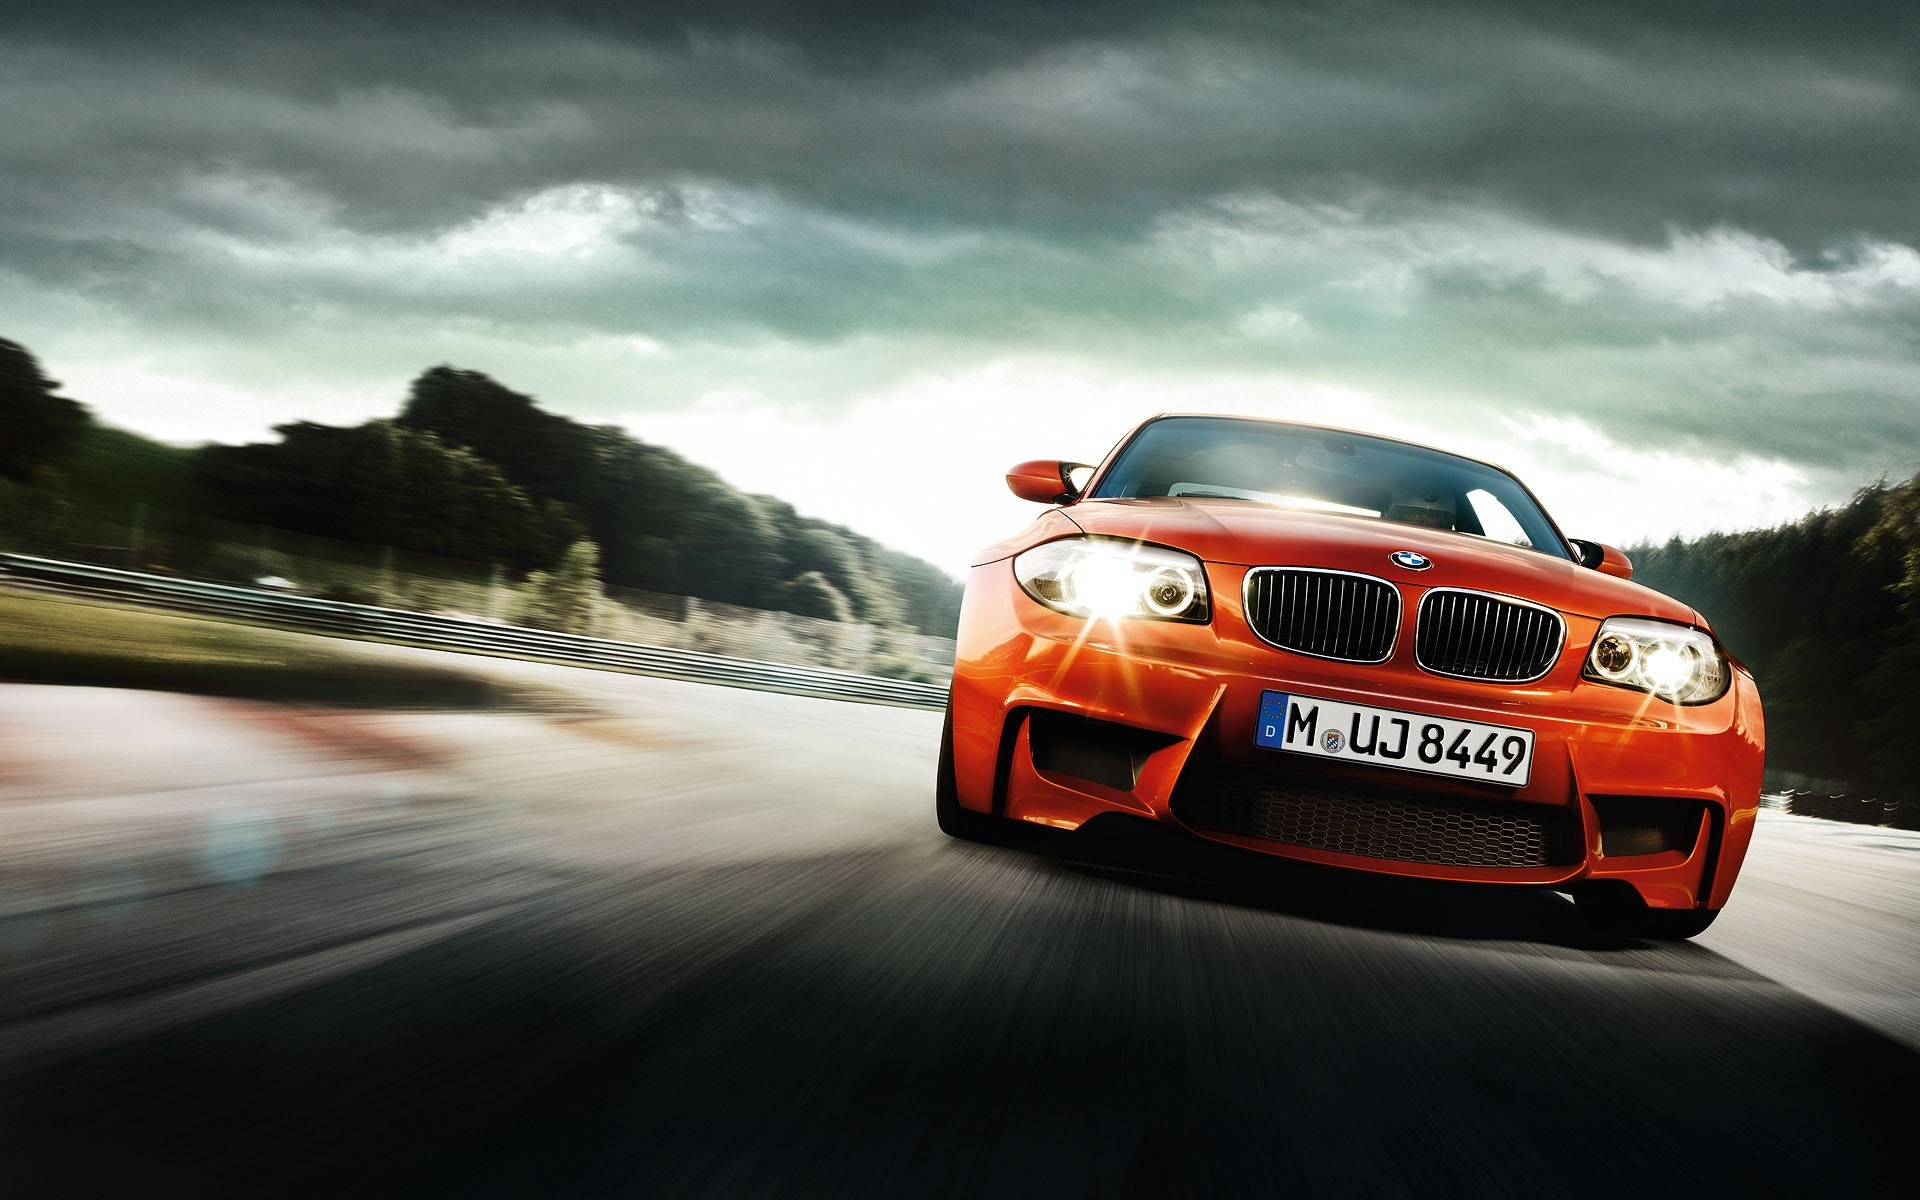 BMW M Coup.jpg free picture in album bmw